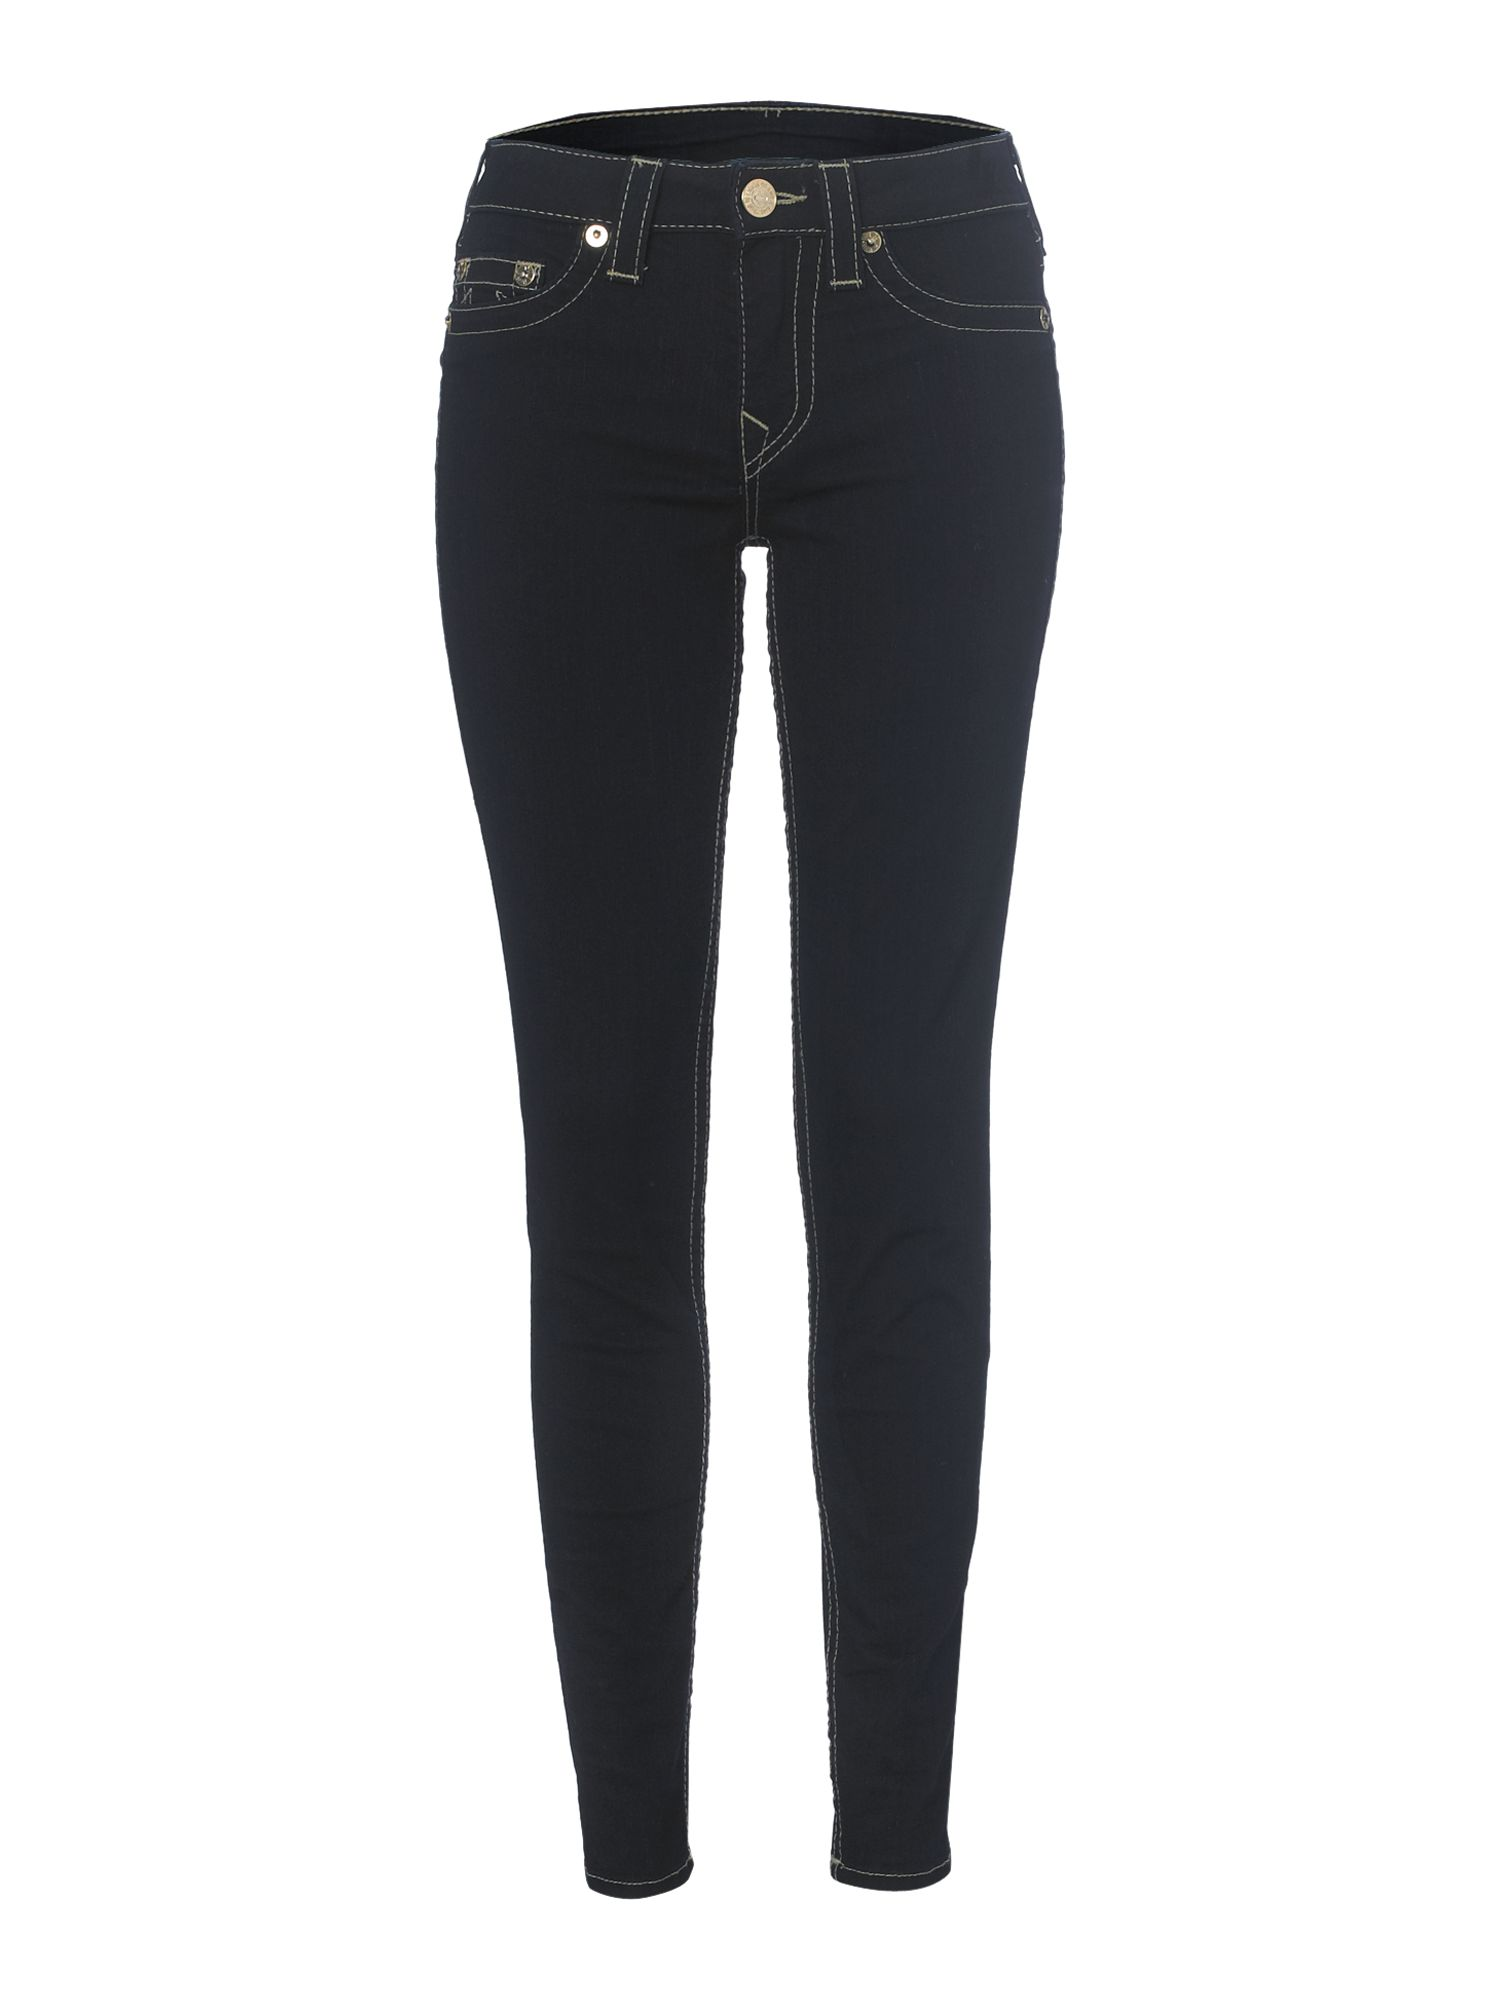 Halle skinny jeggings with gold plaque